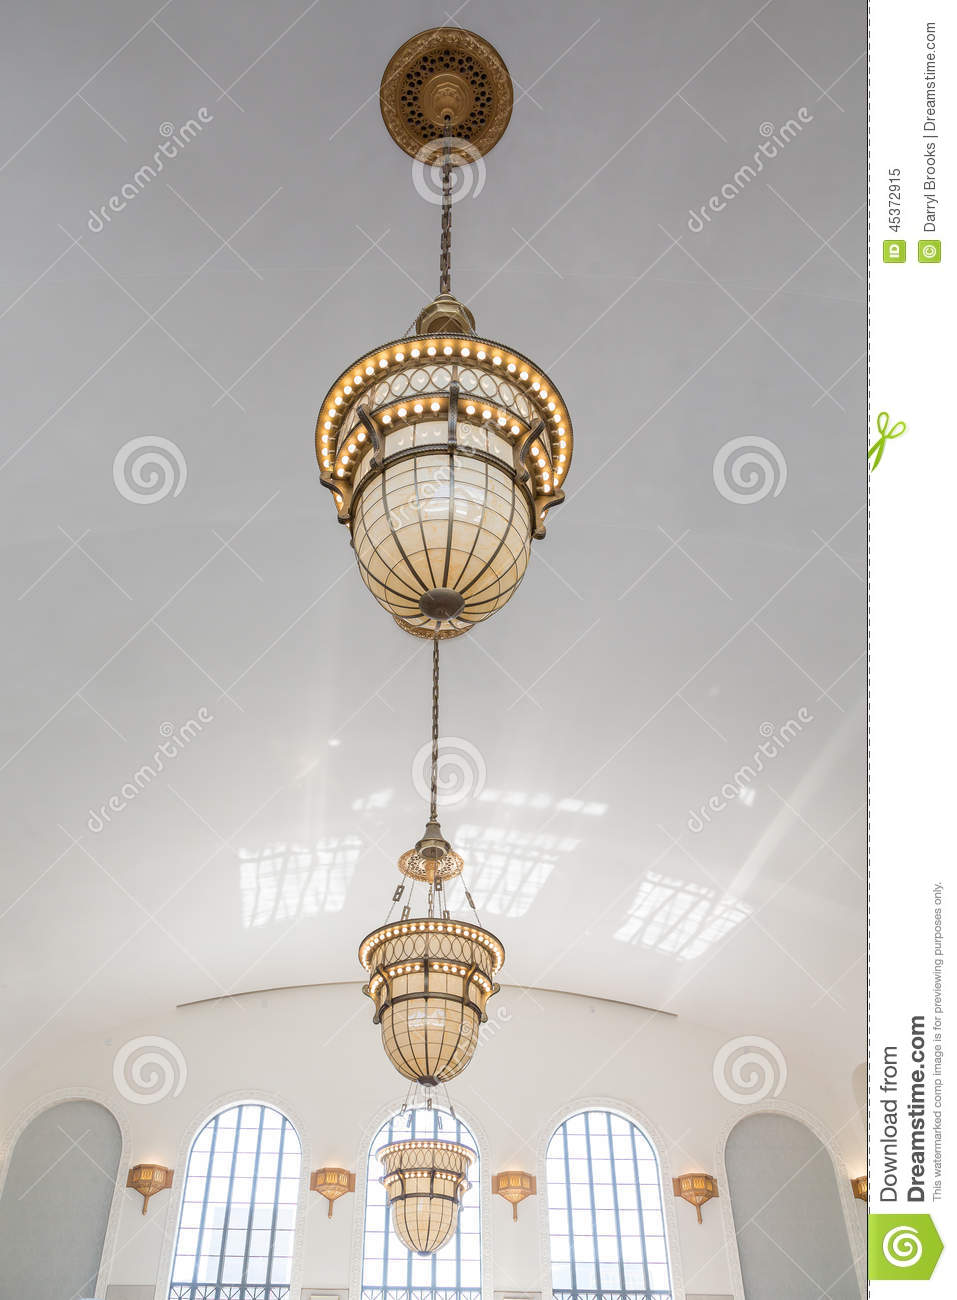 Old Fashioned Ceiling Light Fixture in Public Building.